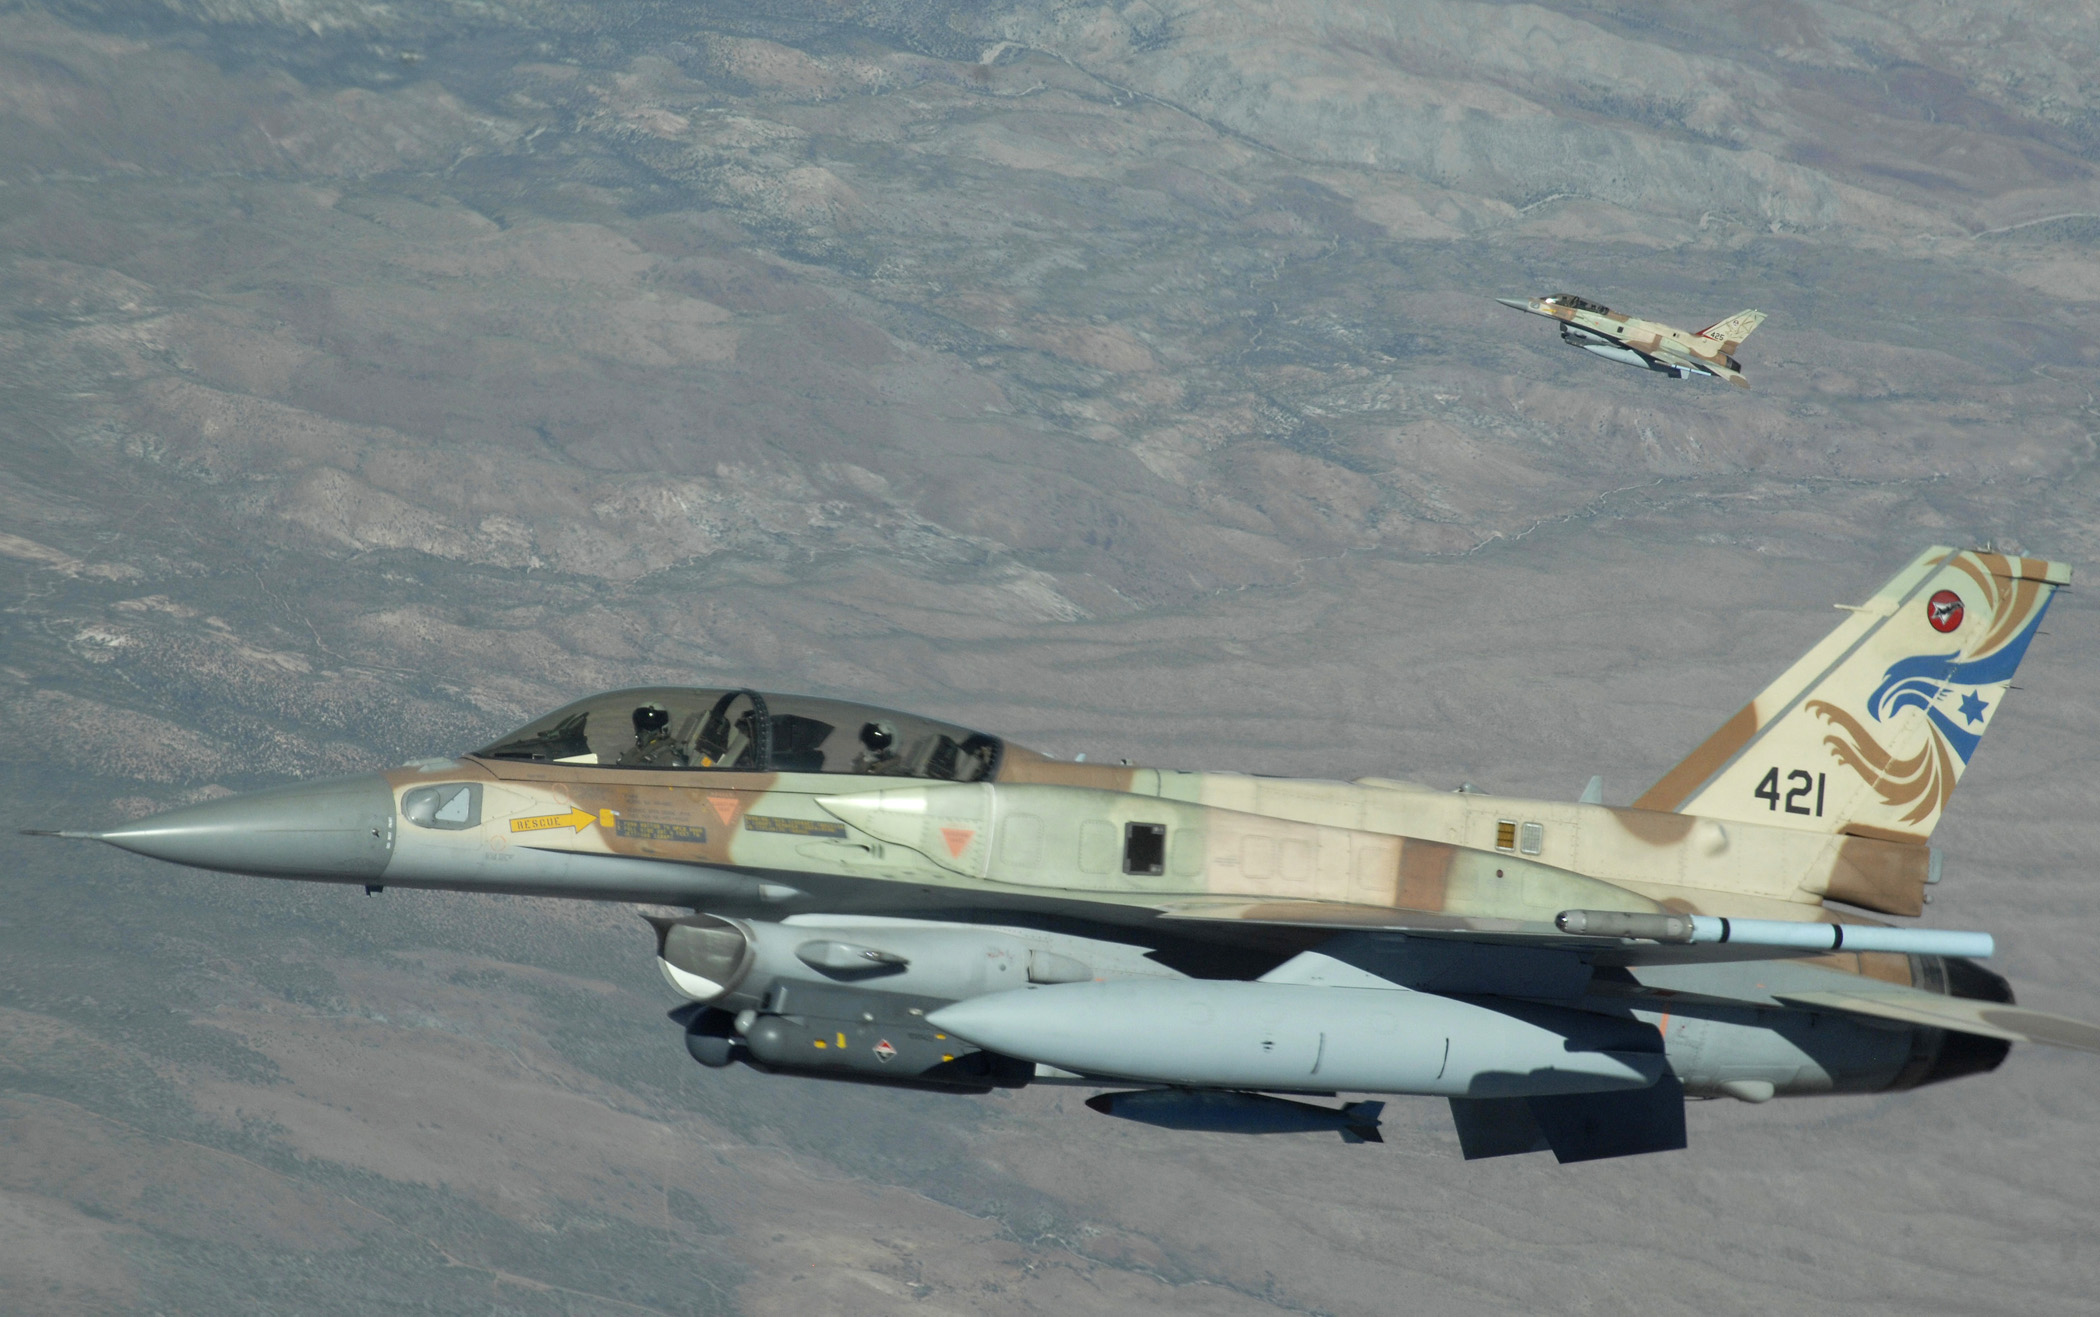 f-16 israeliani al red flag in Nevaga nel 2017